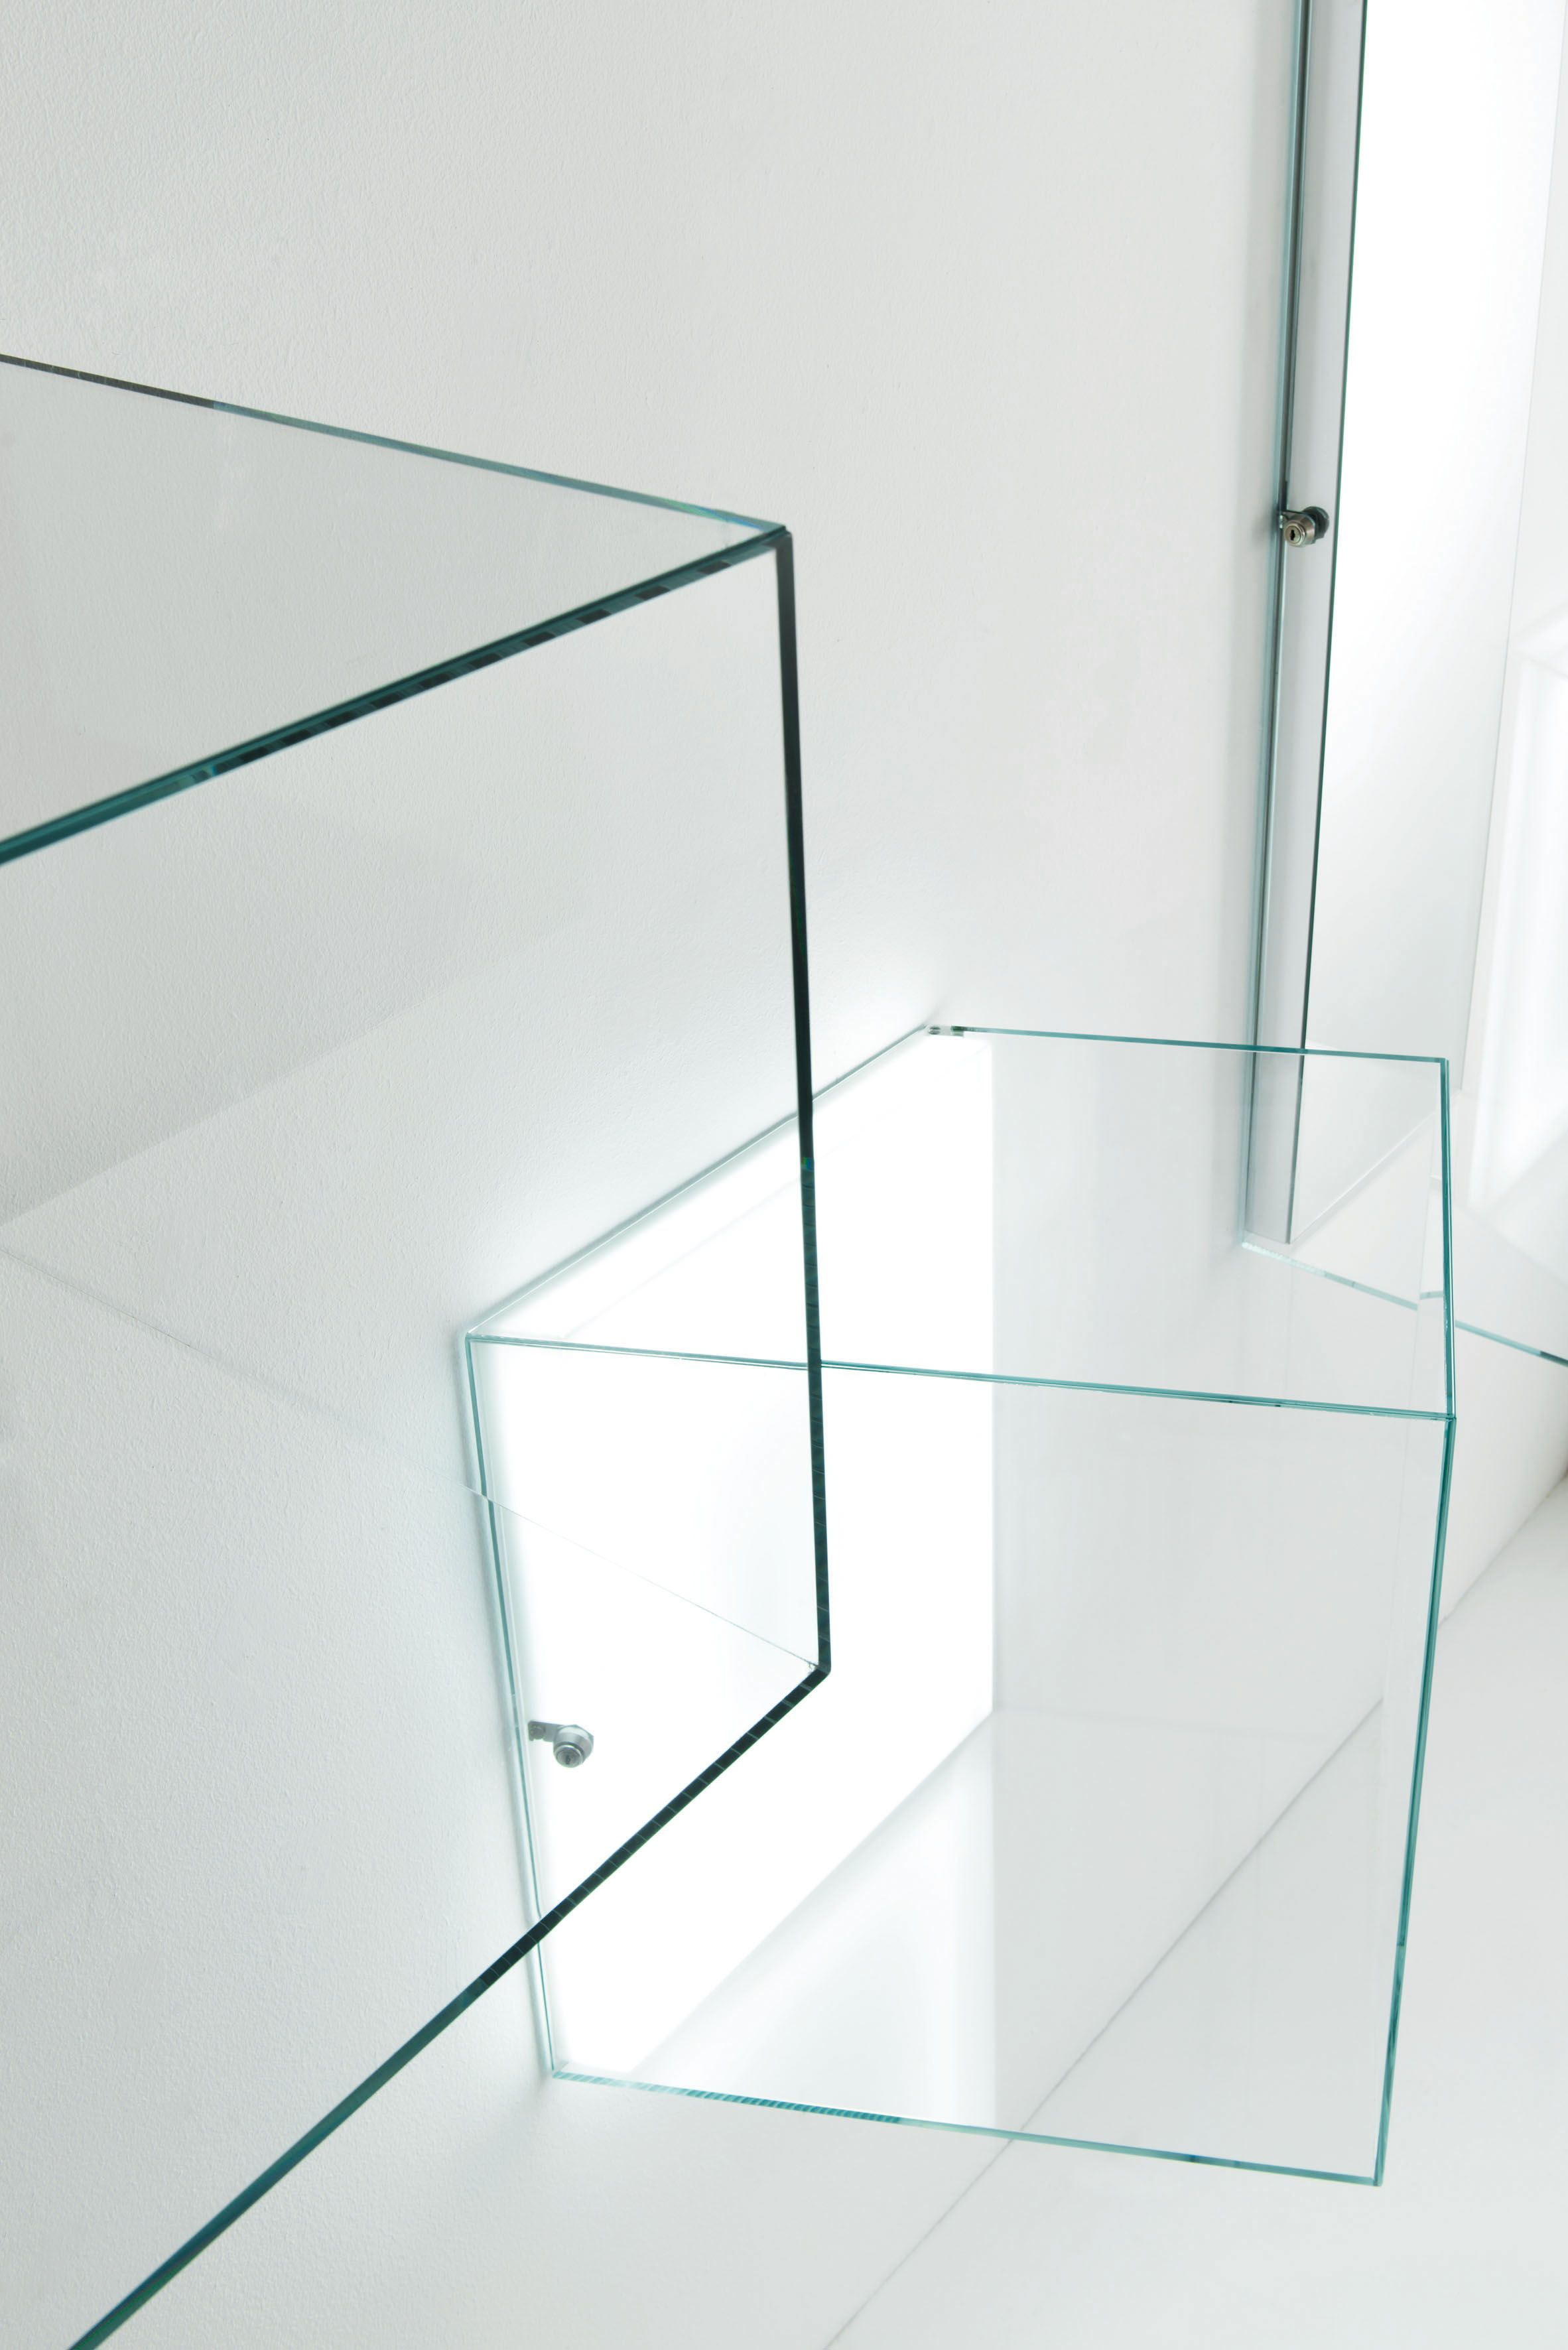 Display Glas Heigh Ho Design Piero Lissoni Aerial Hanging Display Cases In